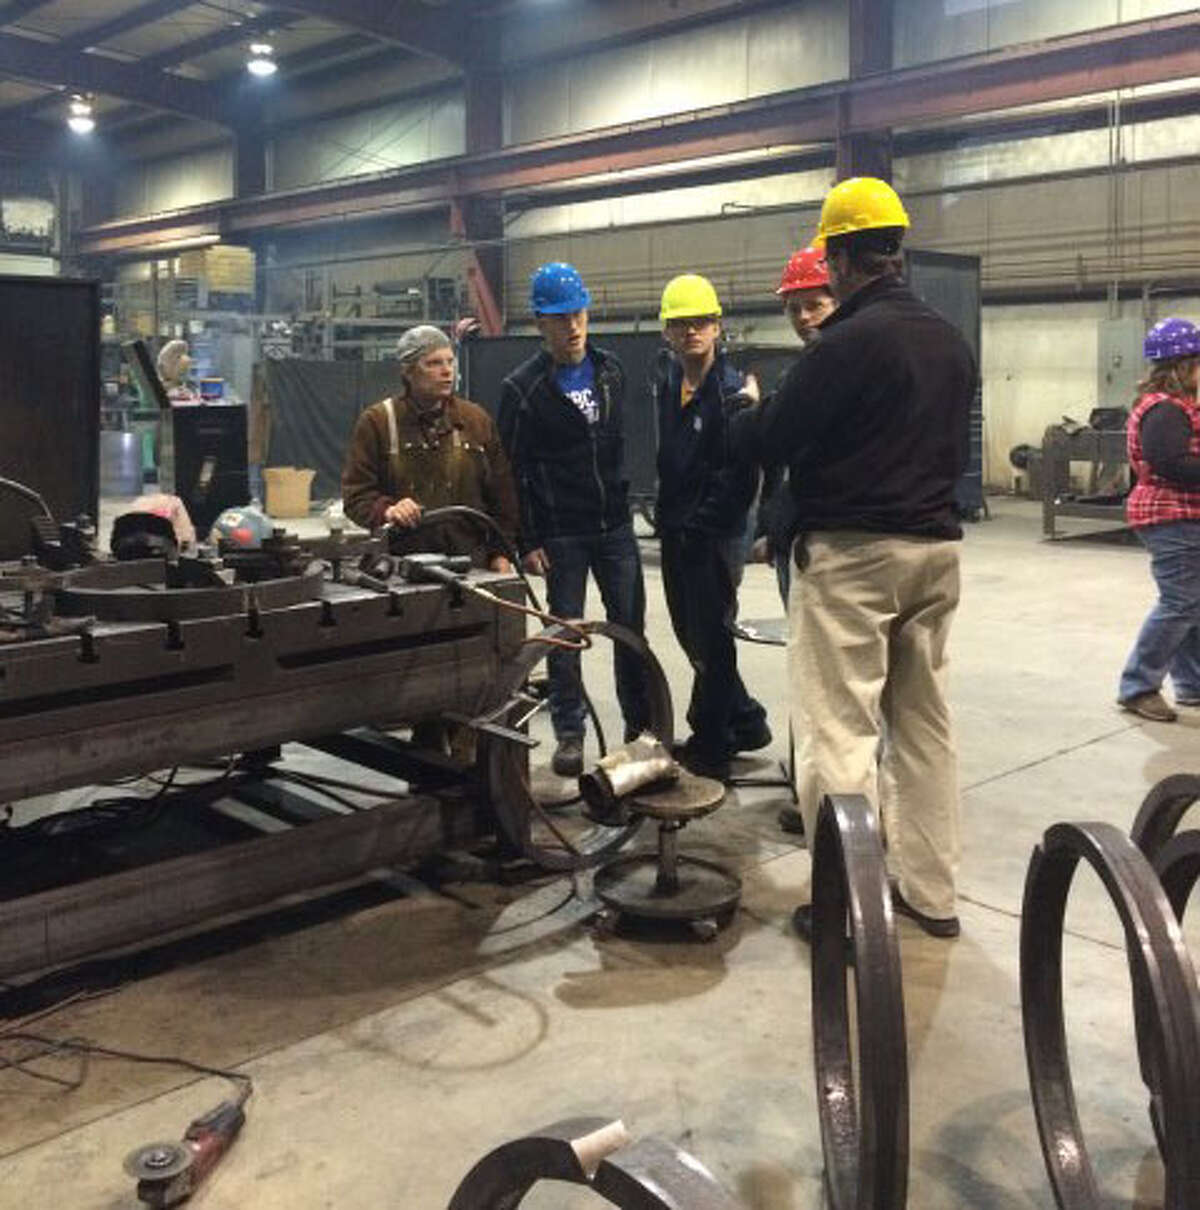 West Shore Community College and area manufacturers are teaming up on a Nov. 10 Manufacturers Collaborative that will be held at the college to promote networking.